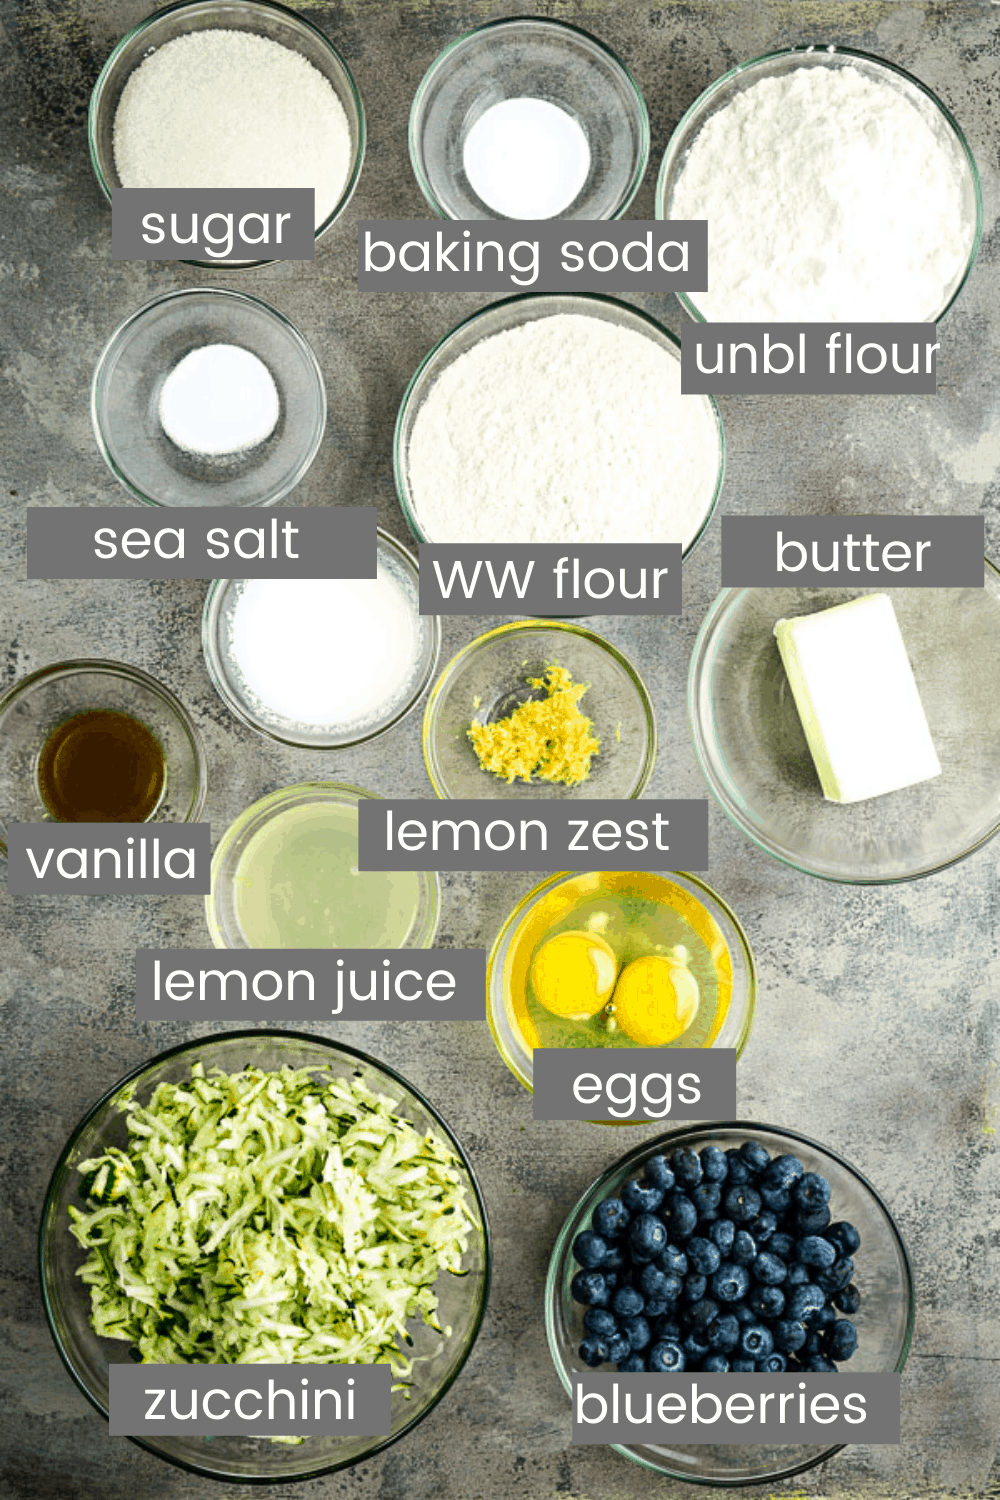 blueberry zucchini bread recipe ingredients in glass bowls with text overlay